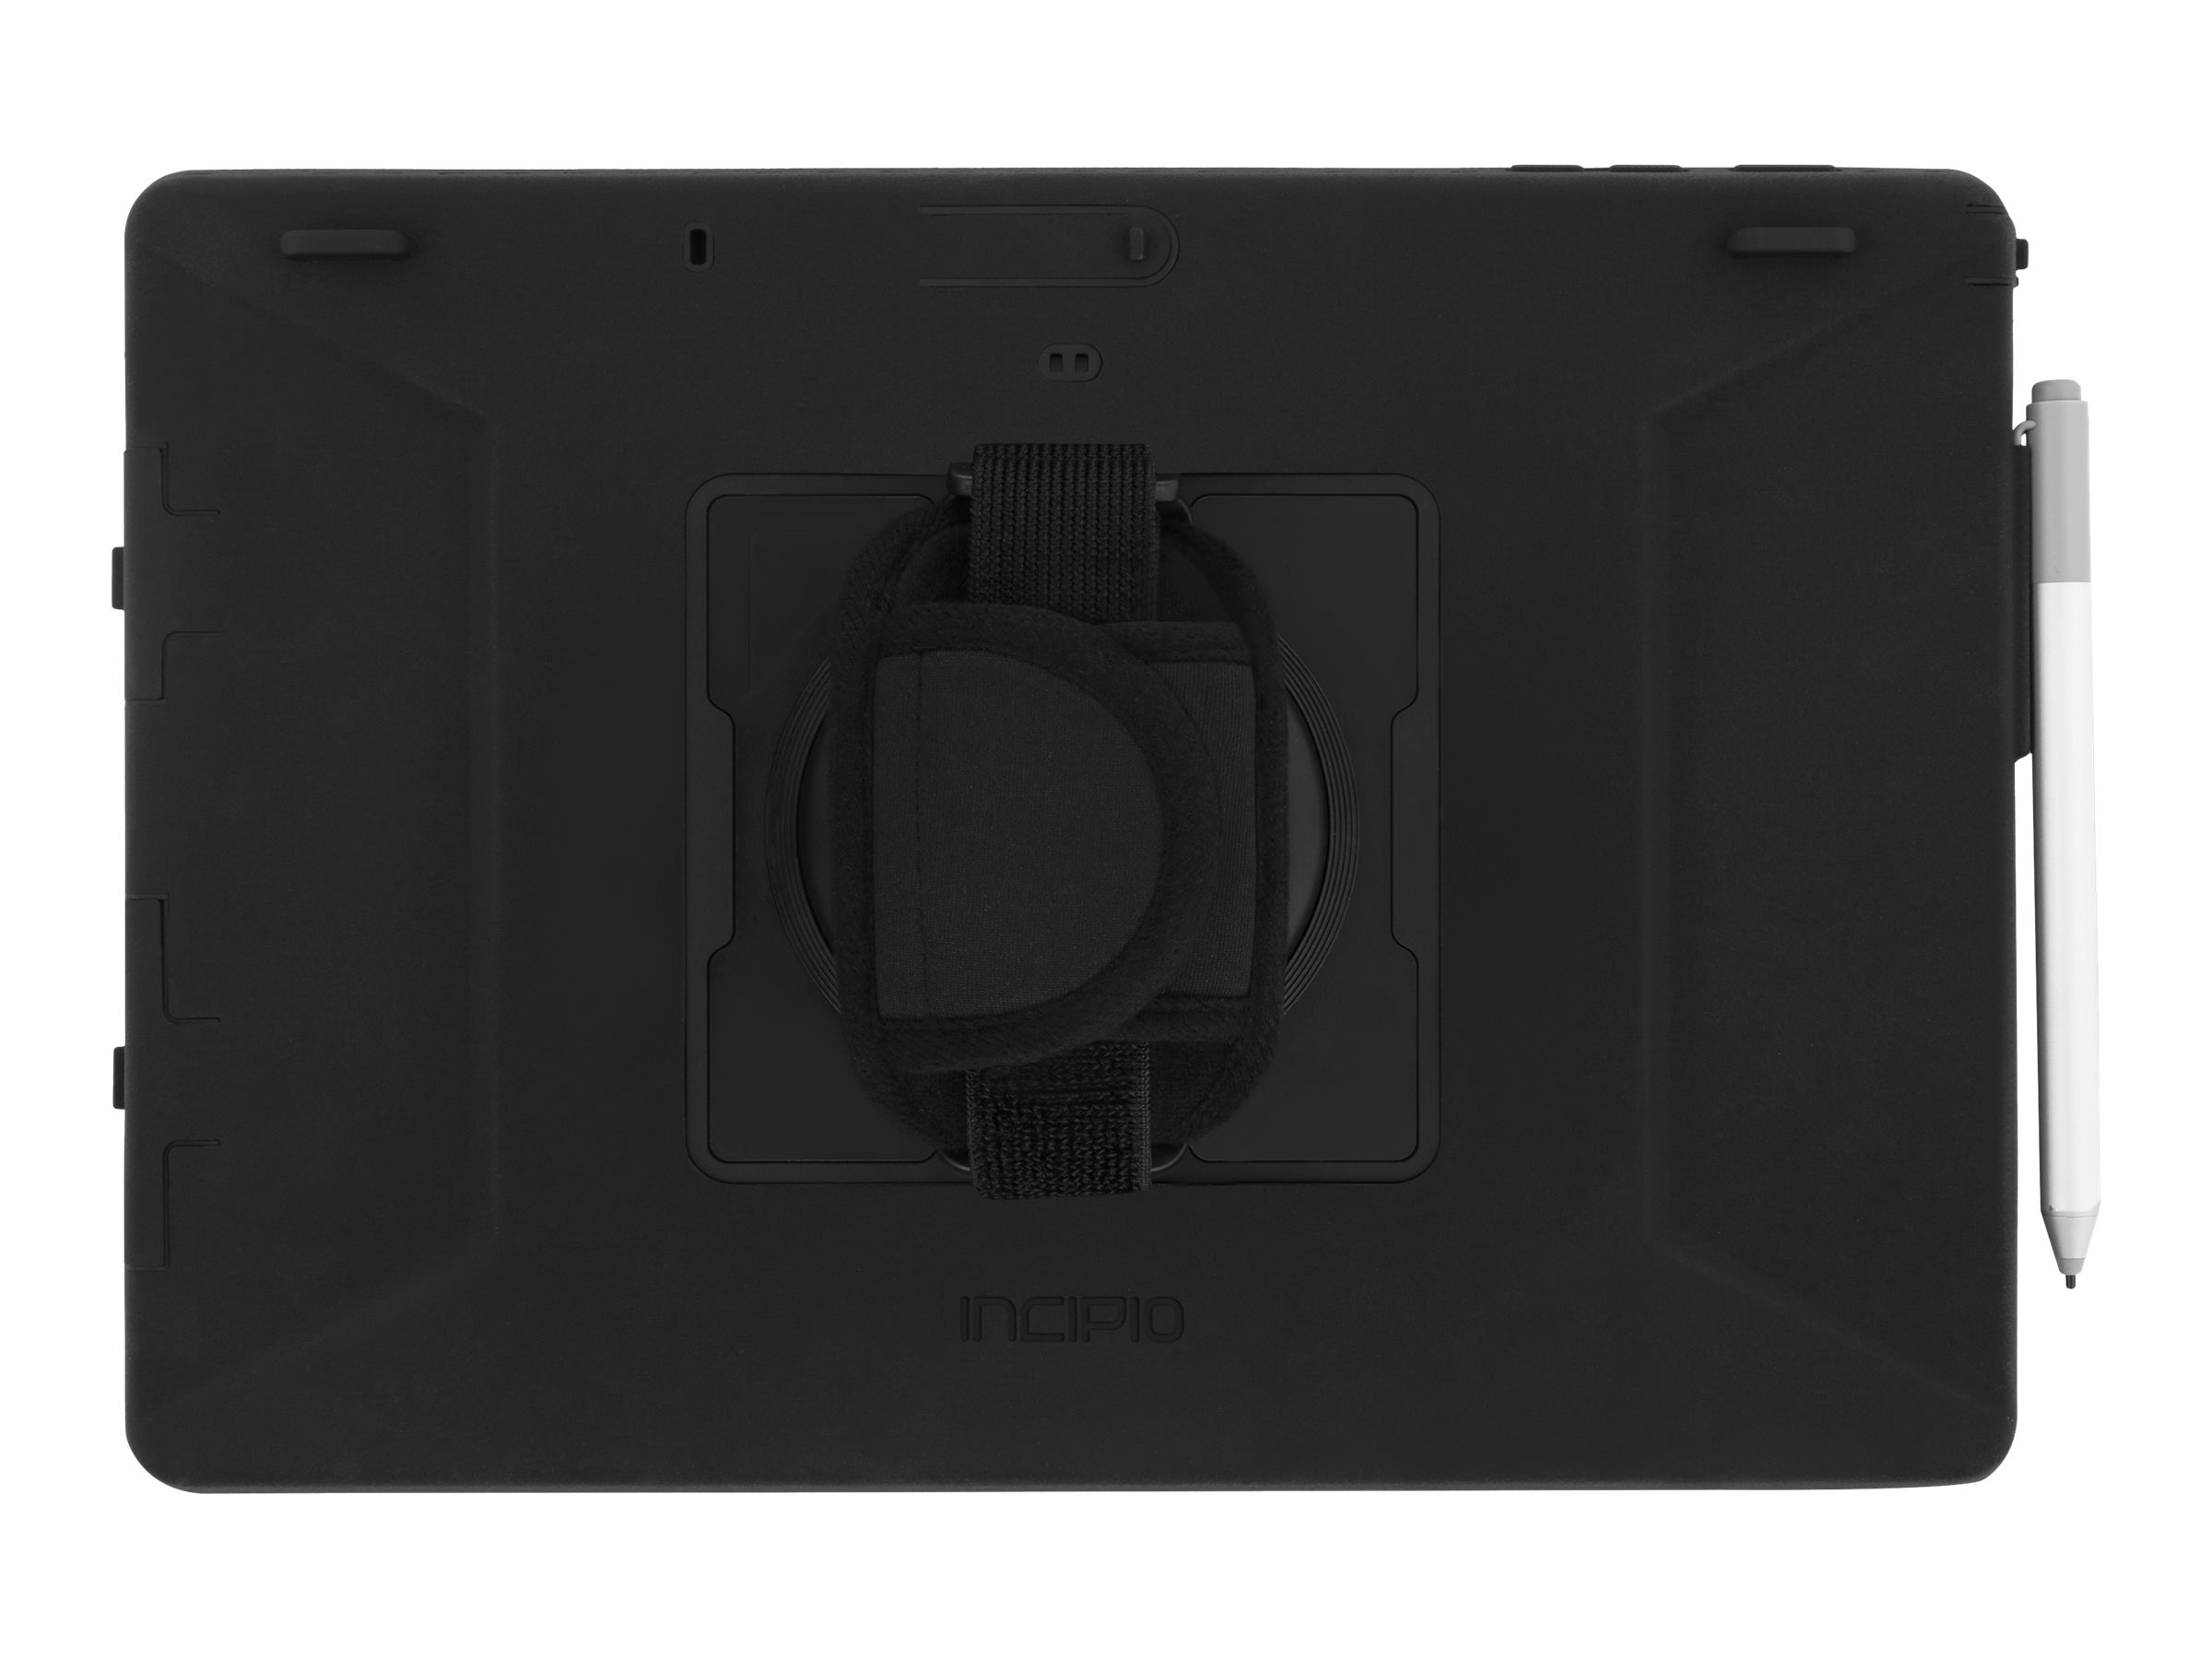 Incipio Technology PW-271-BLK Image 3